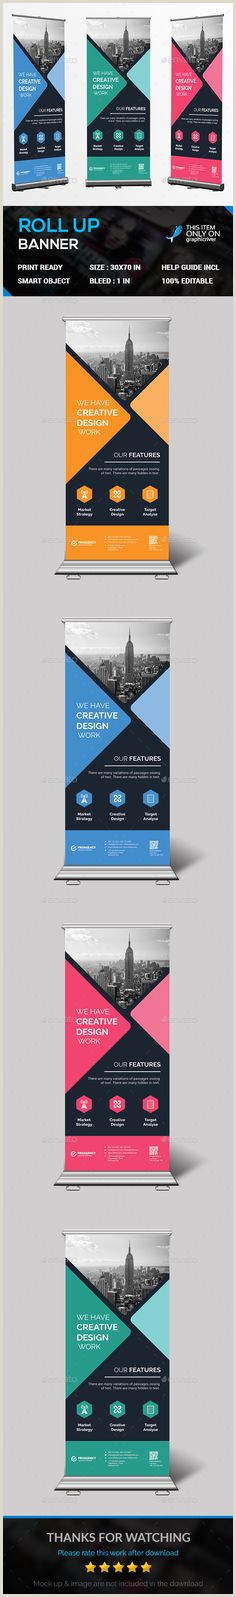 Roll Up Size 37 Best Roll Up Banners Images